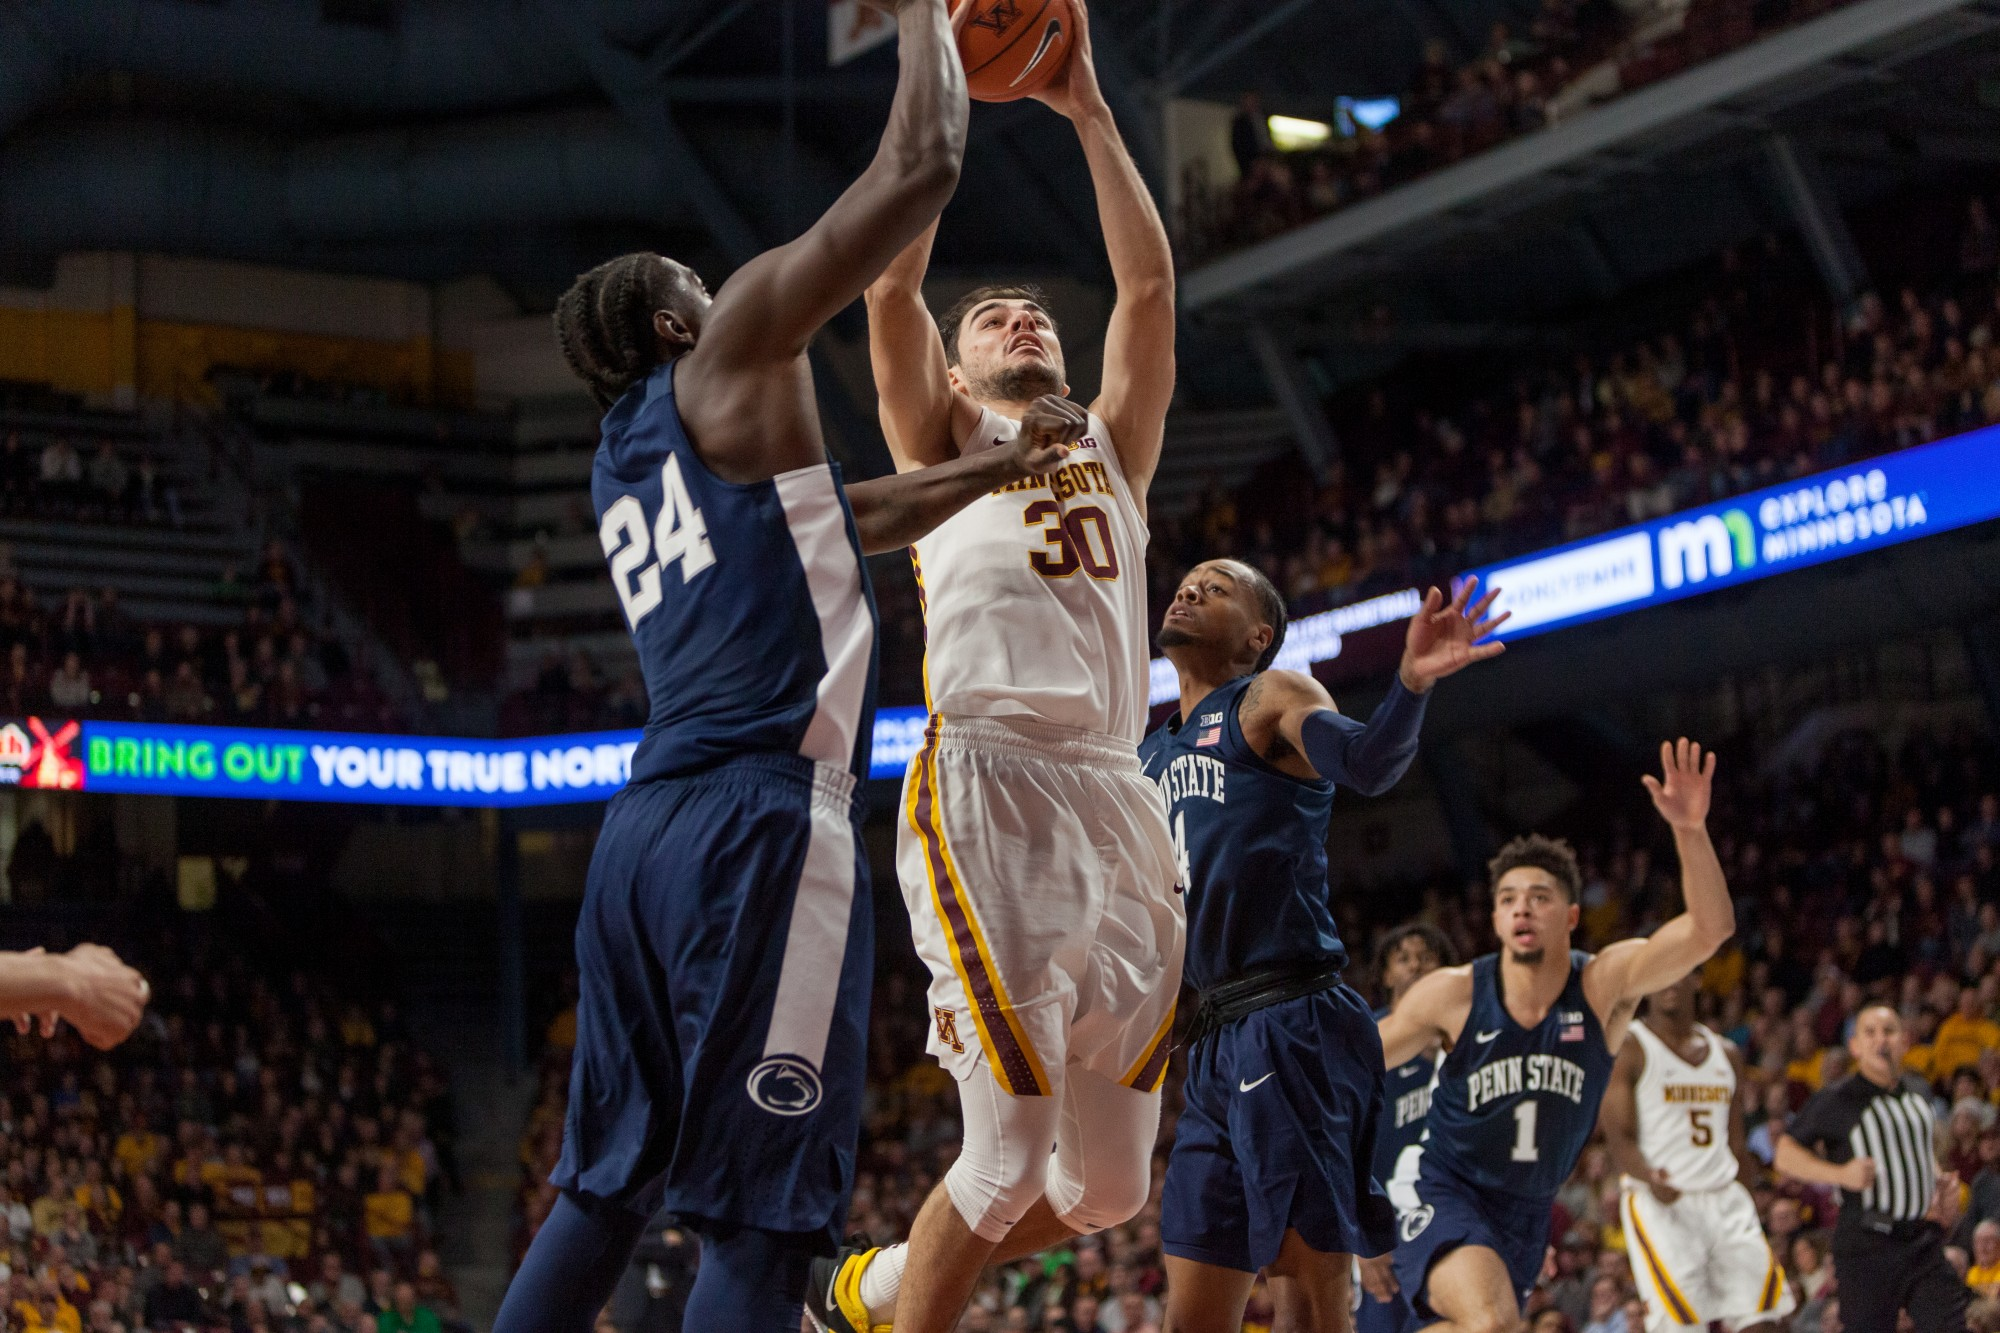 Gophers Forward Alihan Demir attempts a dunk at Williams Arena on Wednesday, Jan. 15.  Minnesota defeated the Penn State Nittany Lions 75-69. (Kamaan Richards / Minnesota Daily)